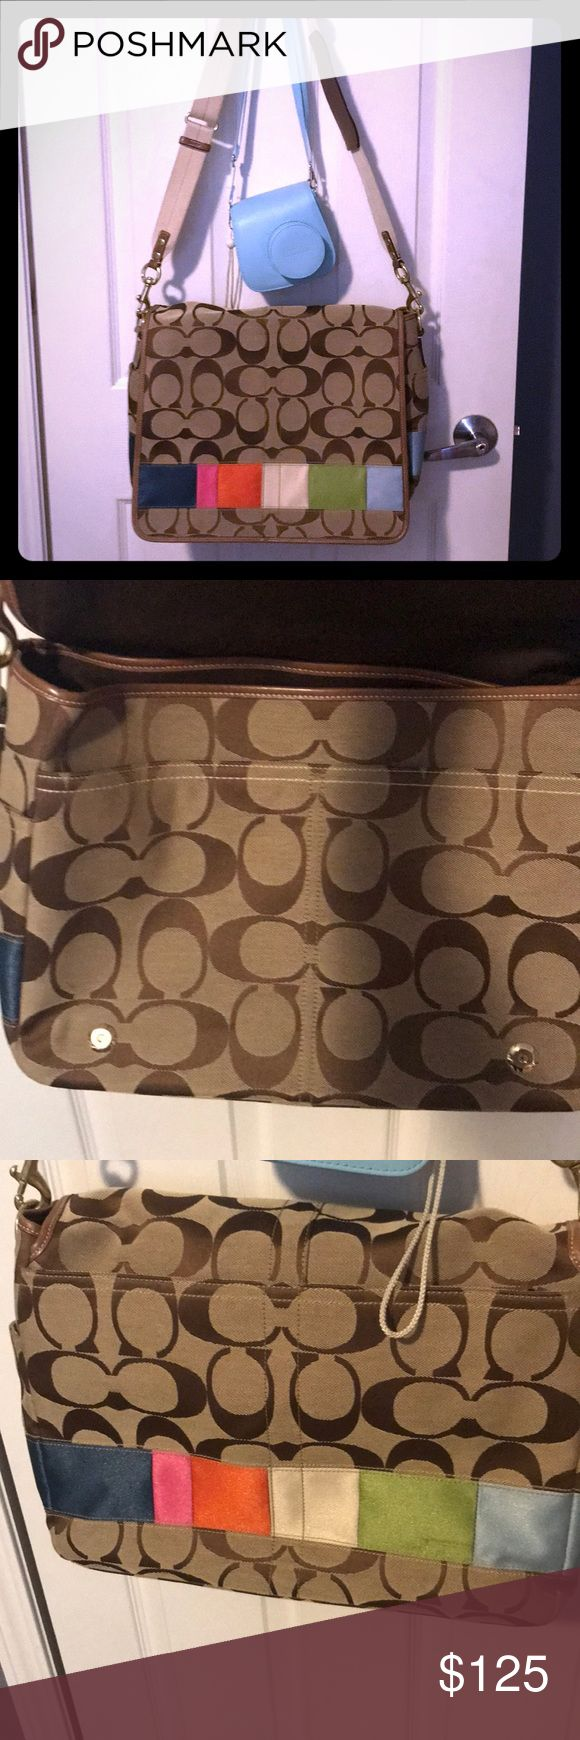 Coach Diaper bag or Laptop carrying case Authentic Coach Canvas Diaper Bag or Carrying case for laptop work or school new condition! Smoke free home Coach Bags Baby Bags